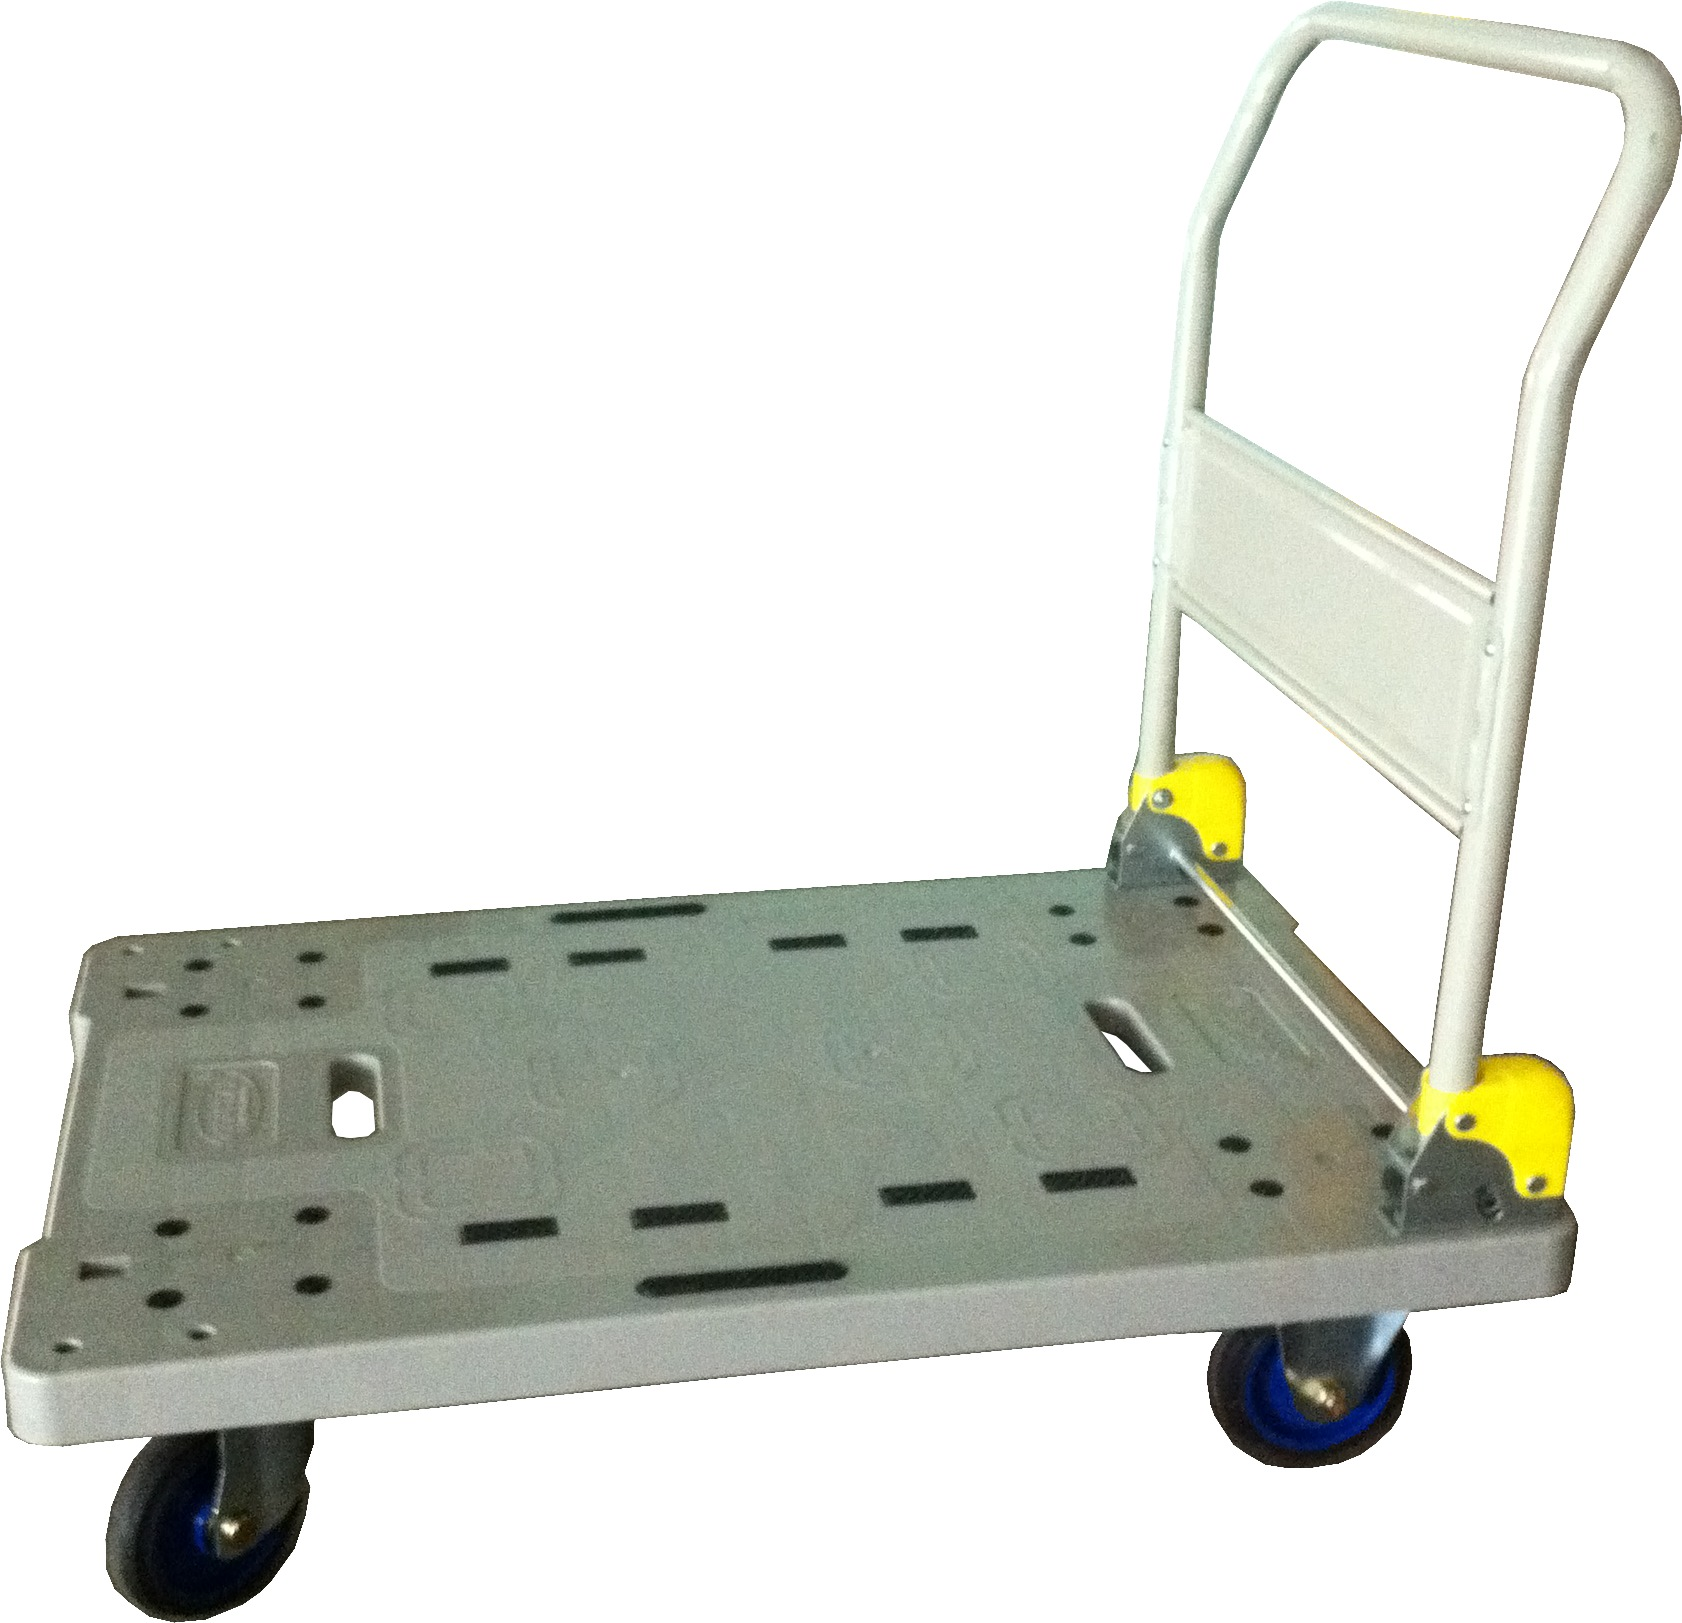 Prestar Folding Handle Plastic Trolley PF301